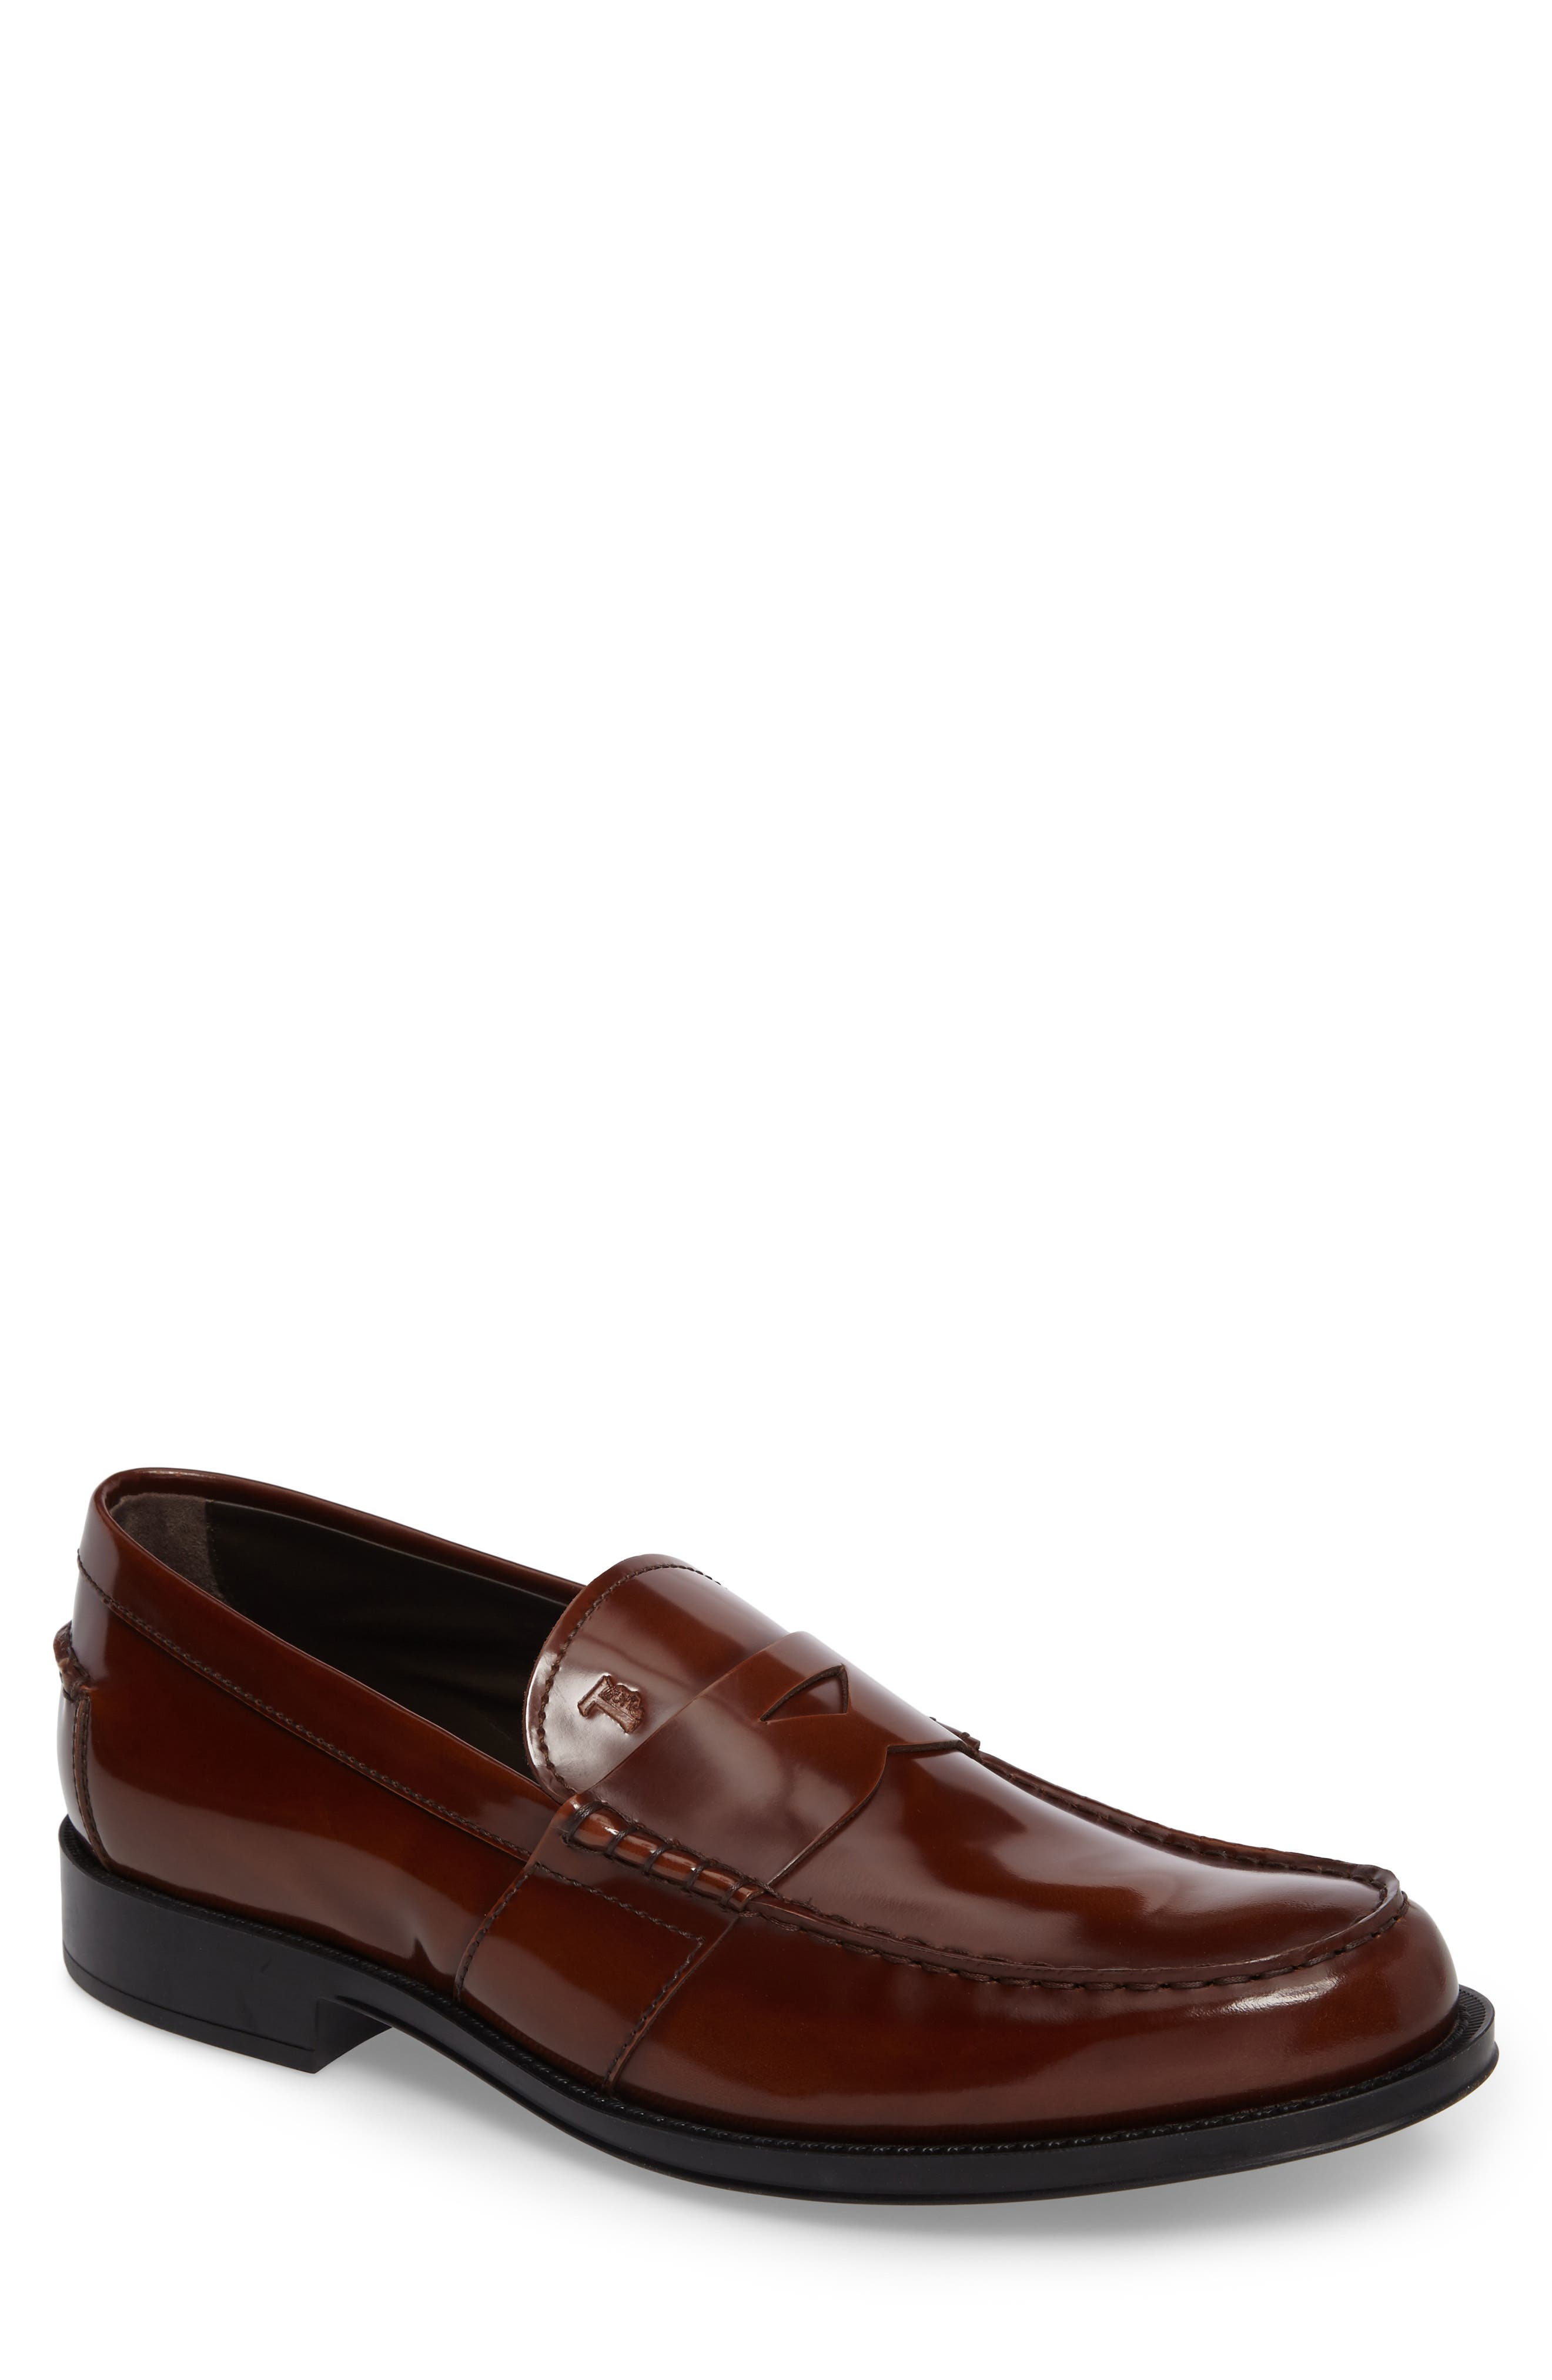 Main Image - Tods Penny Loafer (Men)